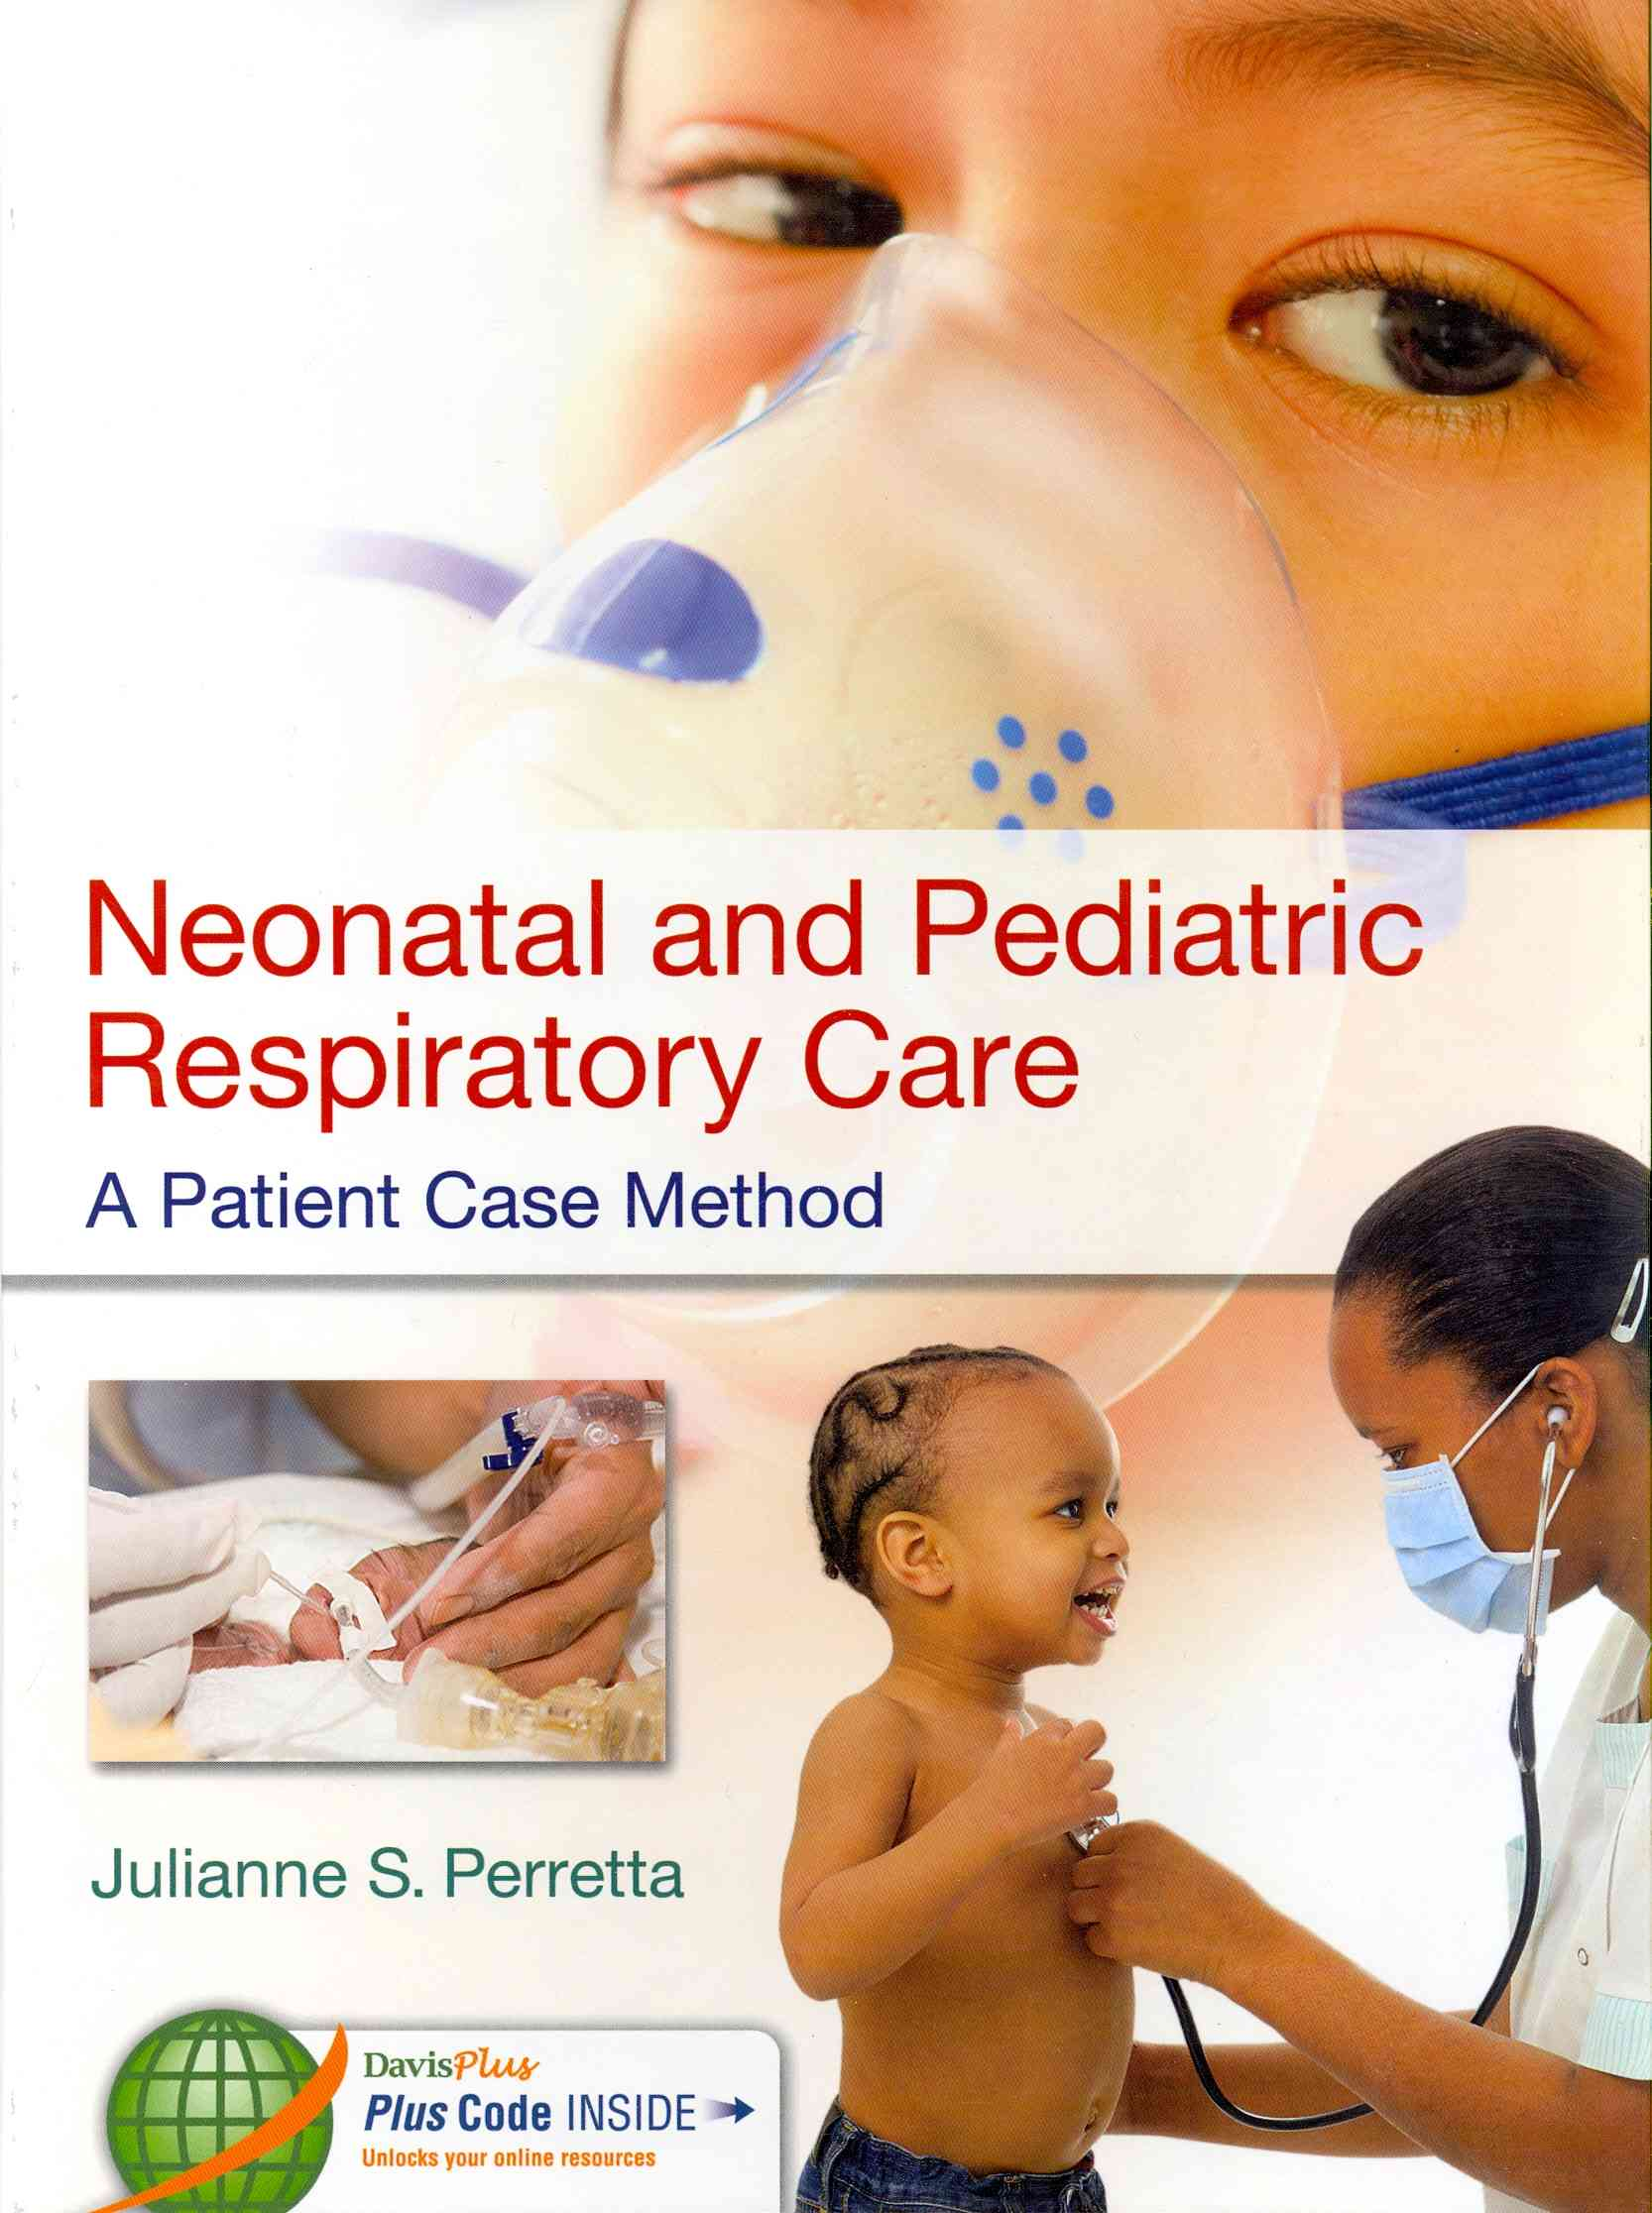 Neonatal and Pediatric Respiratory Care By Perretta, Julianne